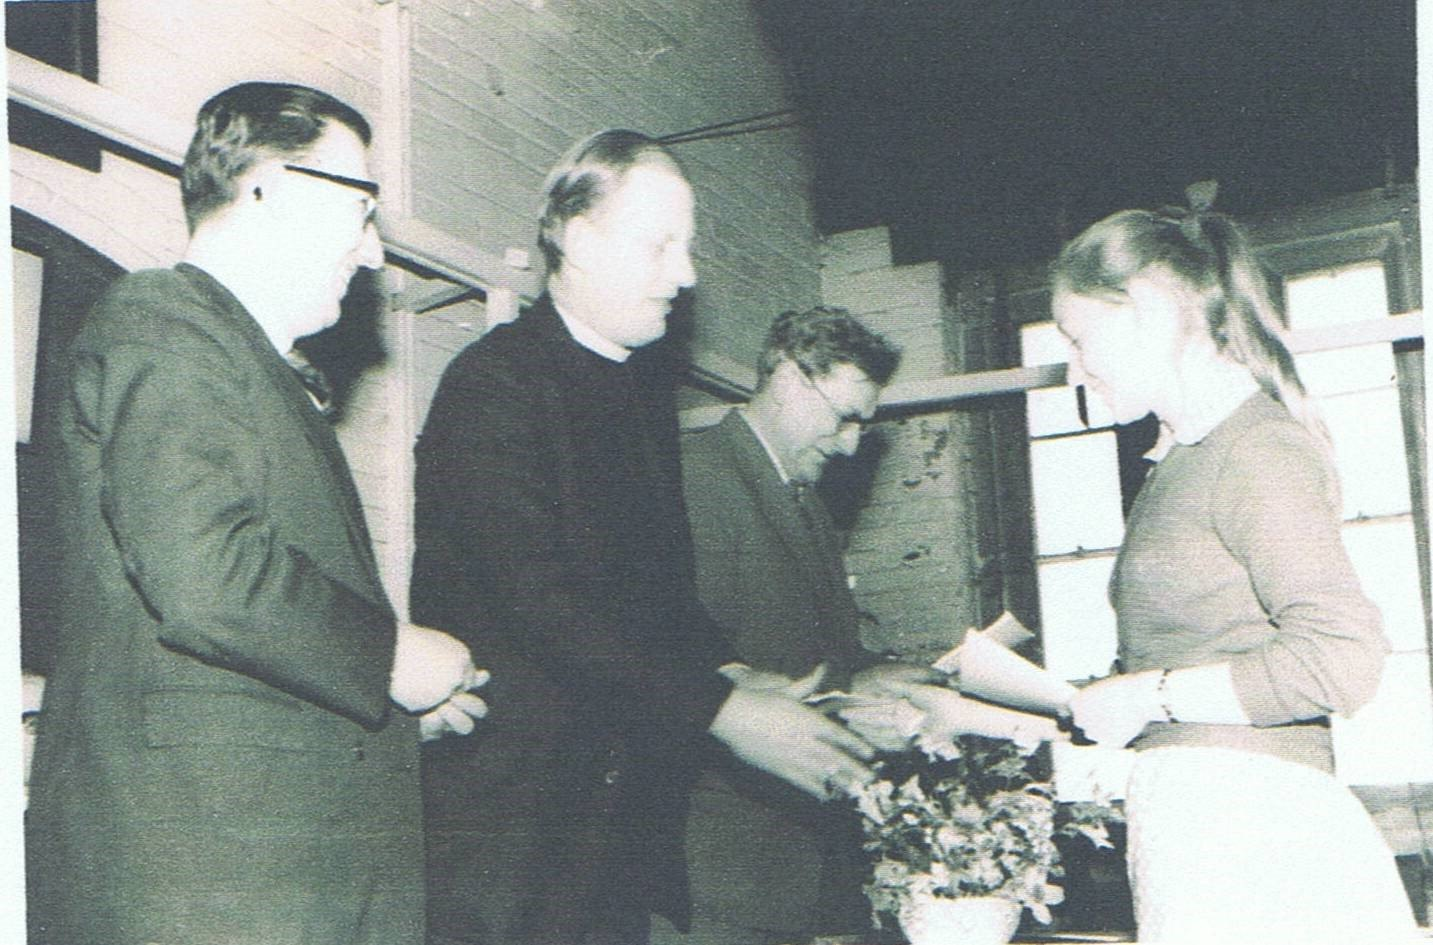 c. 1963/64. Gillian Savage receiving school prize (possibly for poetry) from Rev. Michael Hayter (rector of Steeple Aston school) in Steeple Aston school hall. Others unknown.